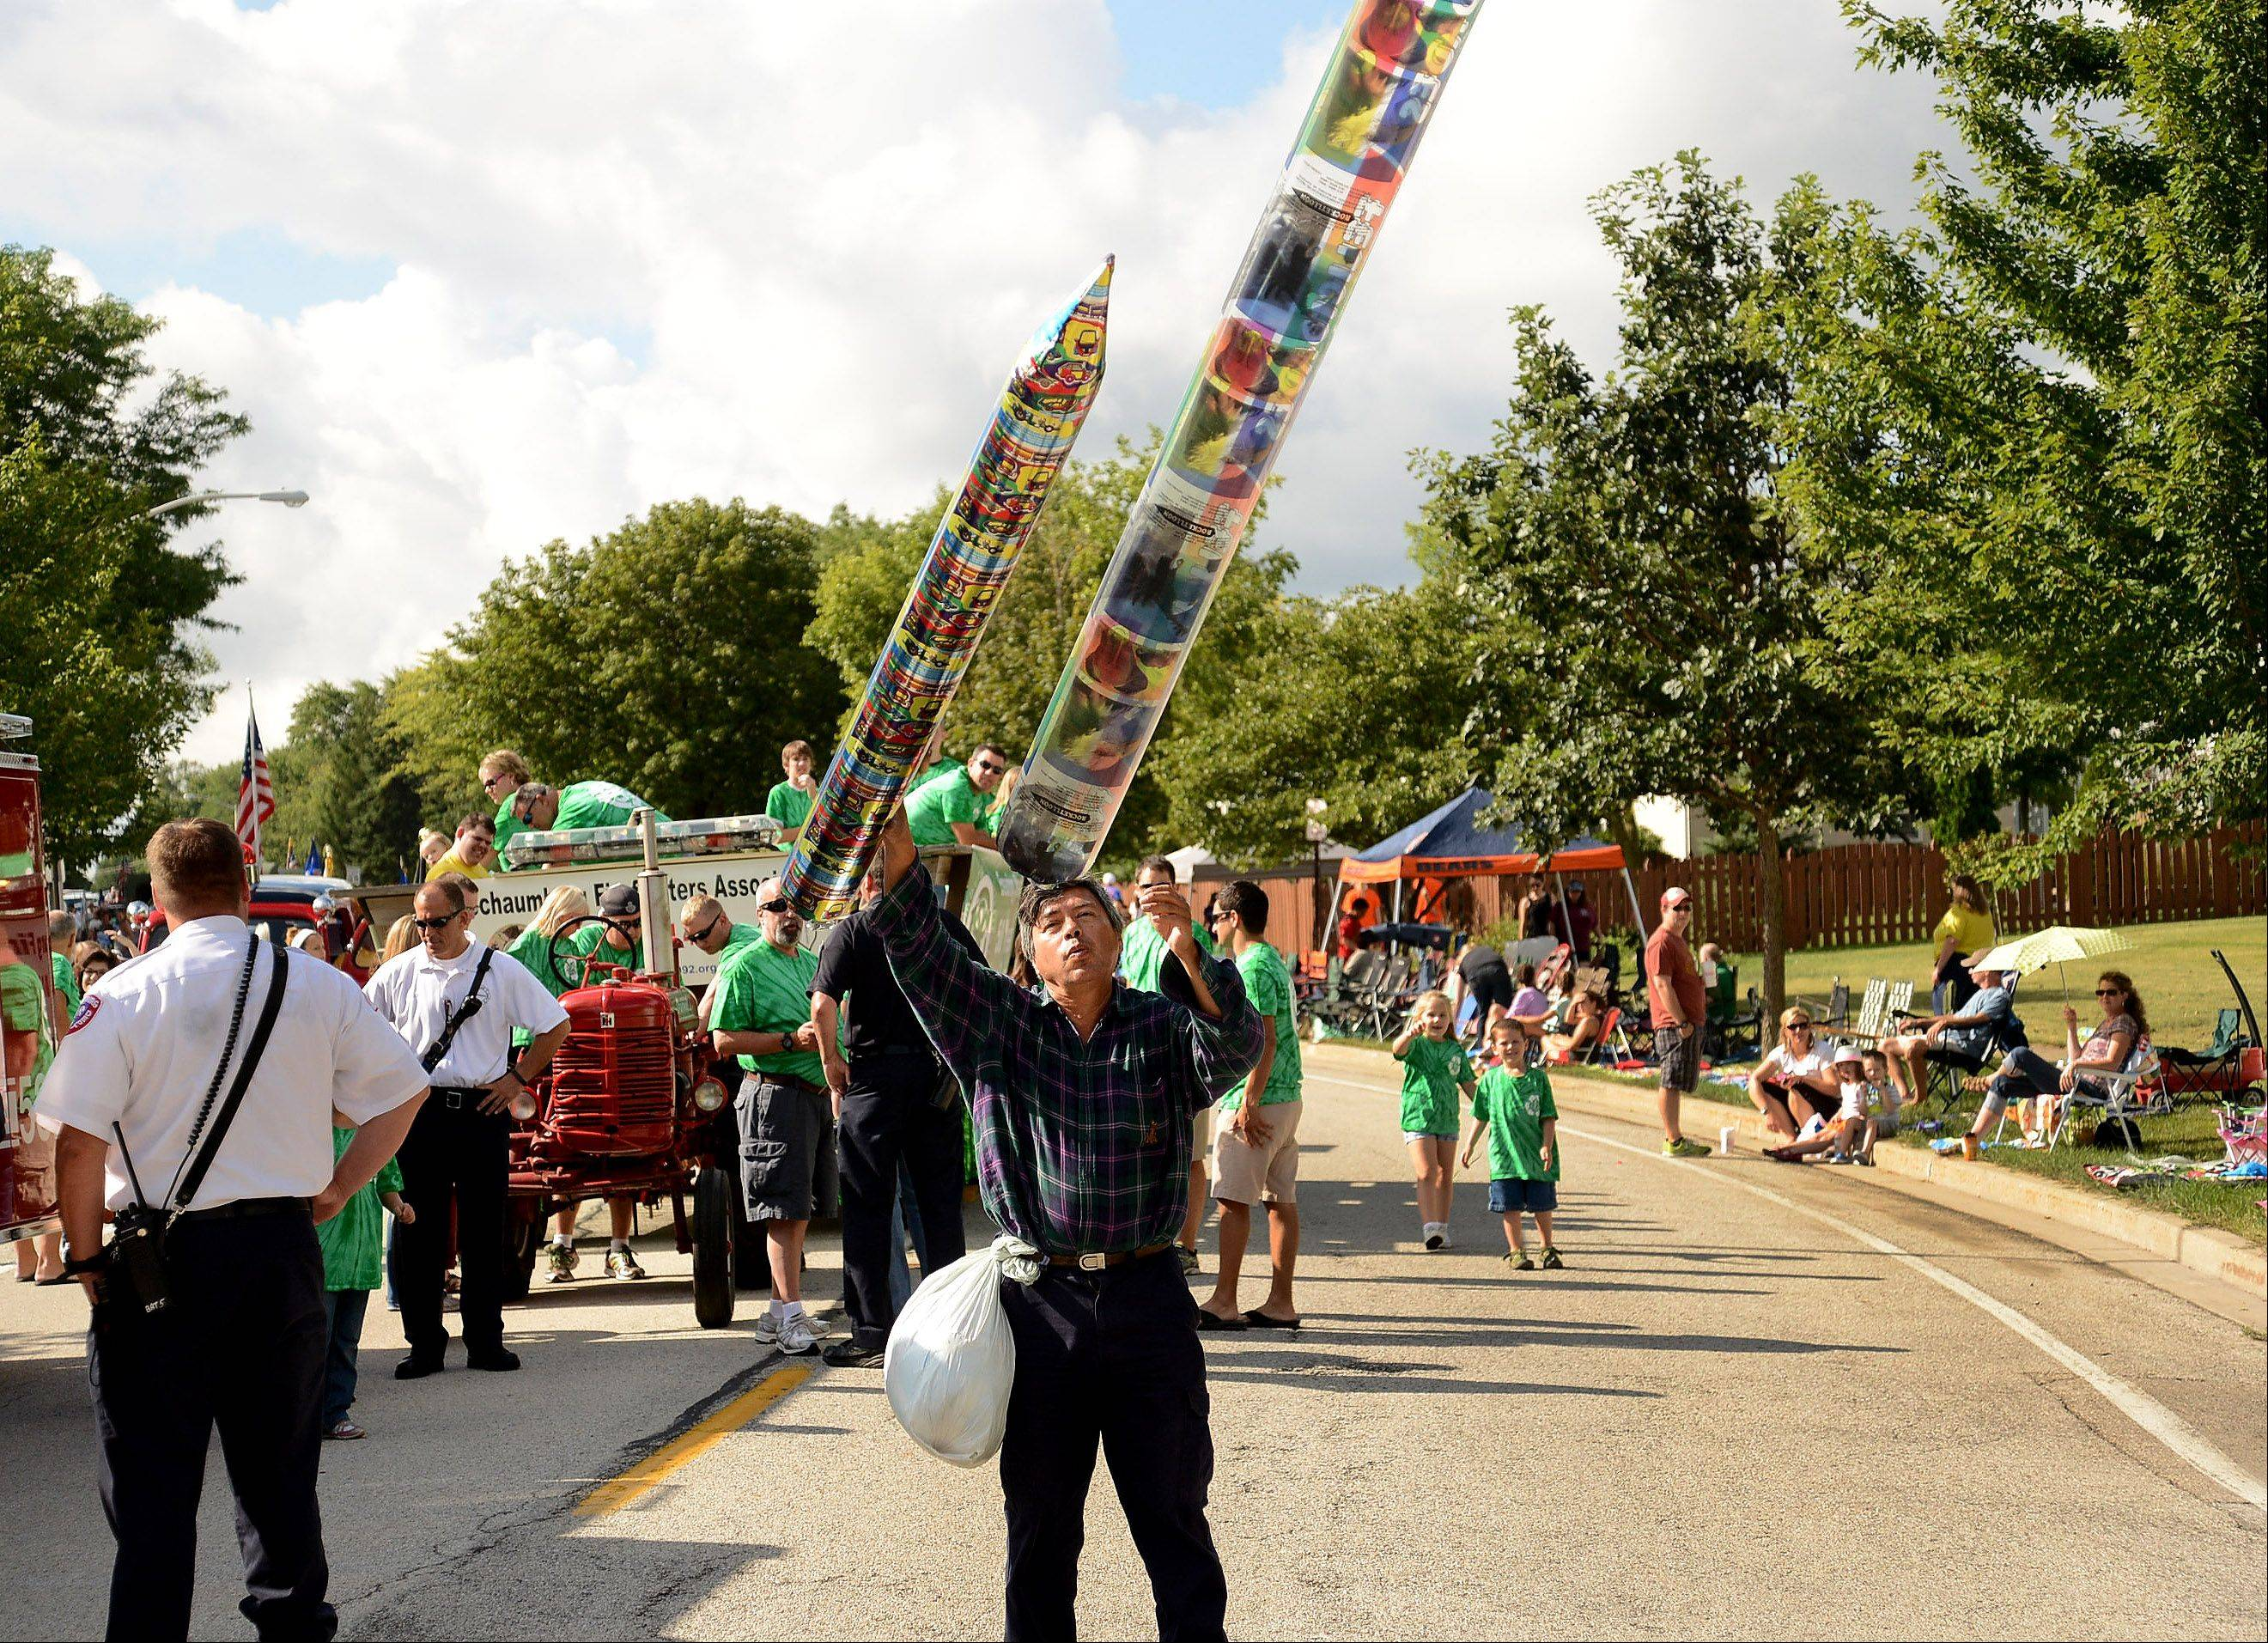 Eugenio Marin launches his cylindrical balloons during the annual Schaumburg Septemberfest parade Monday.